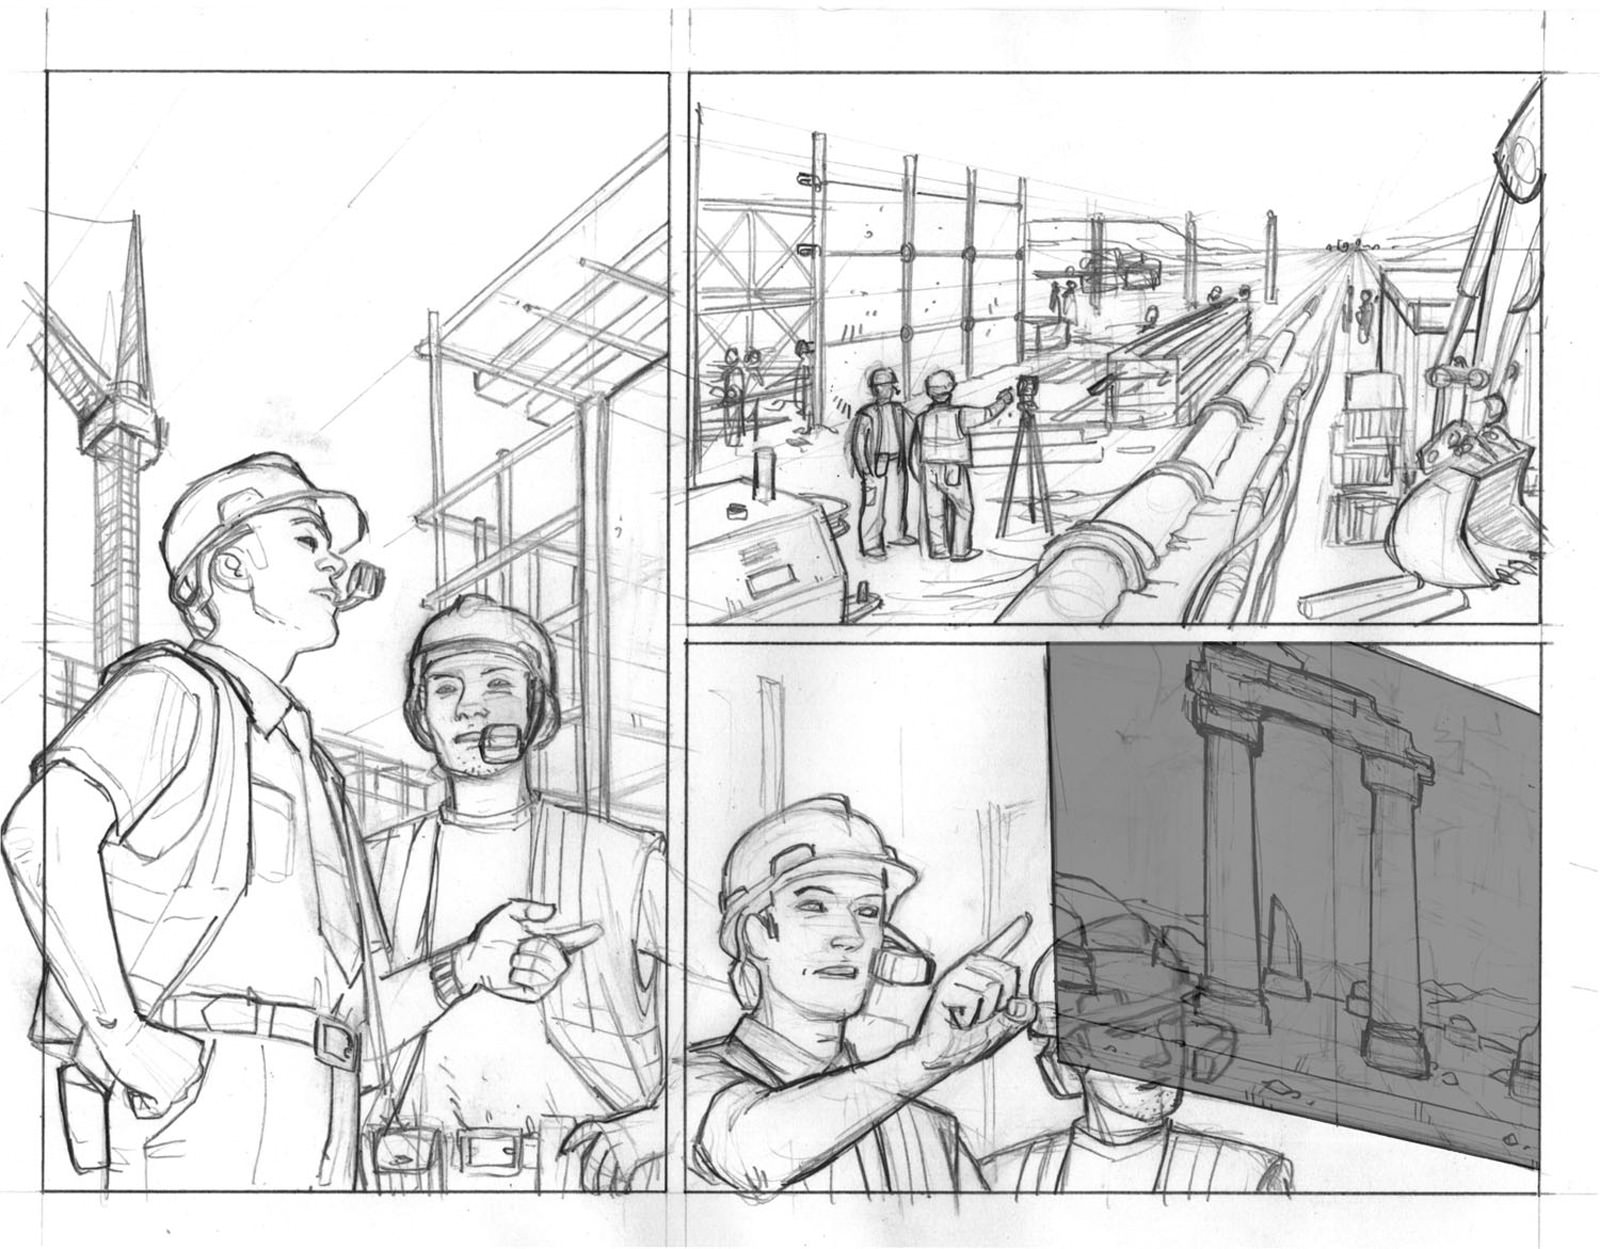 Pre-colourised comic strip of an HMD being worn during an architecture and building operation